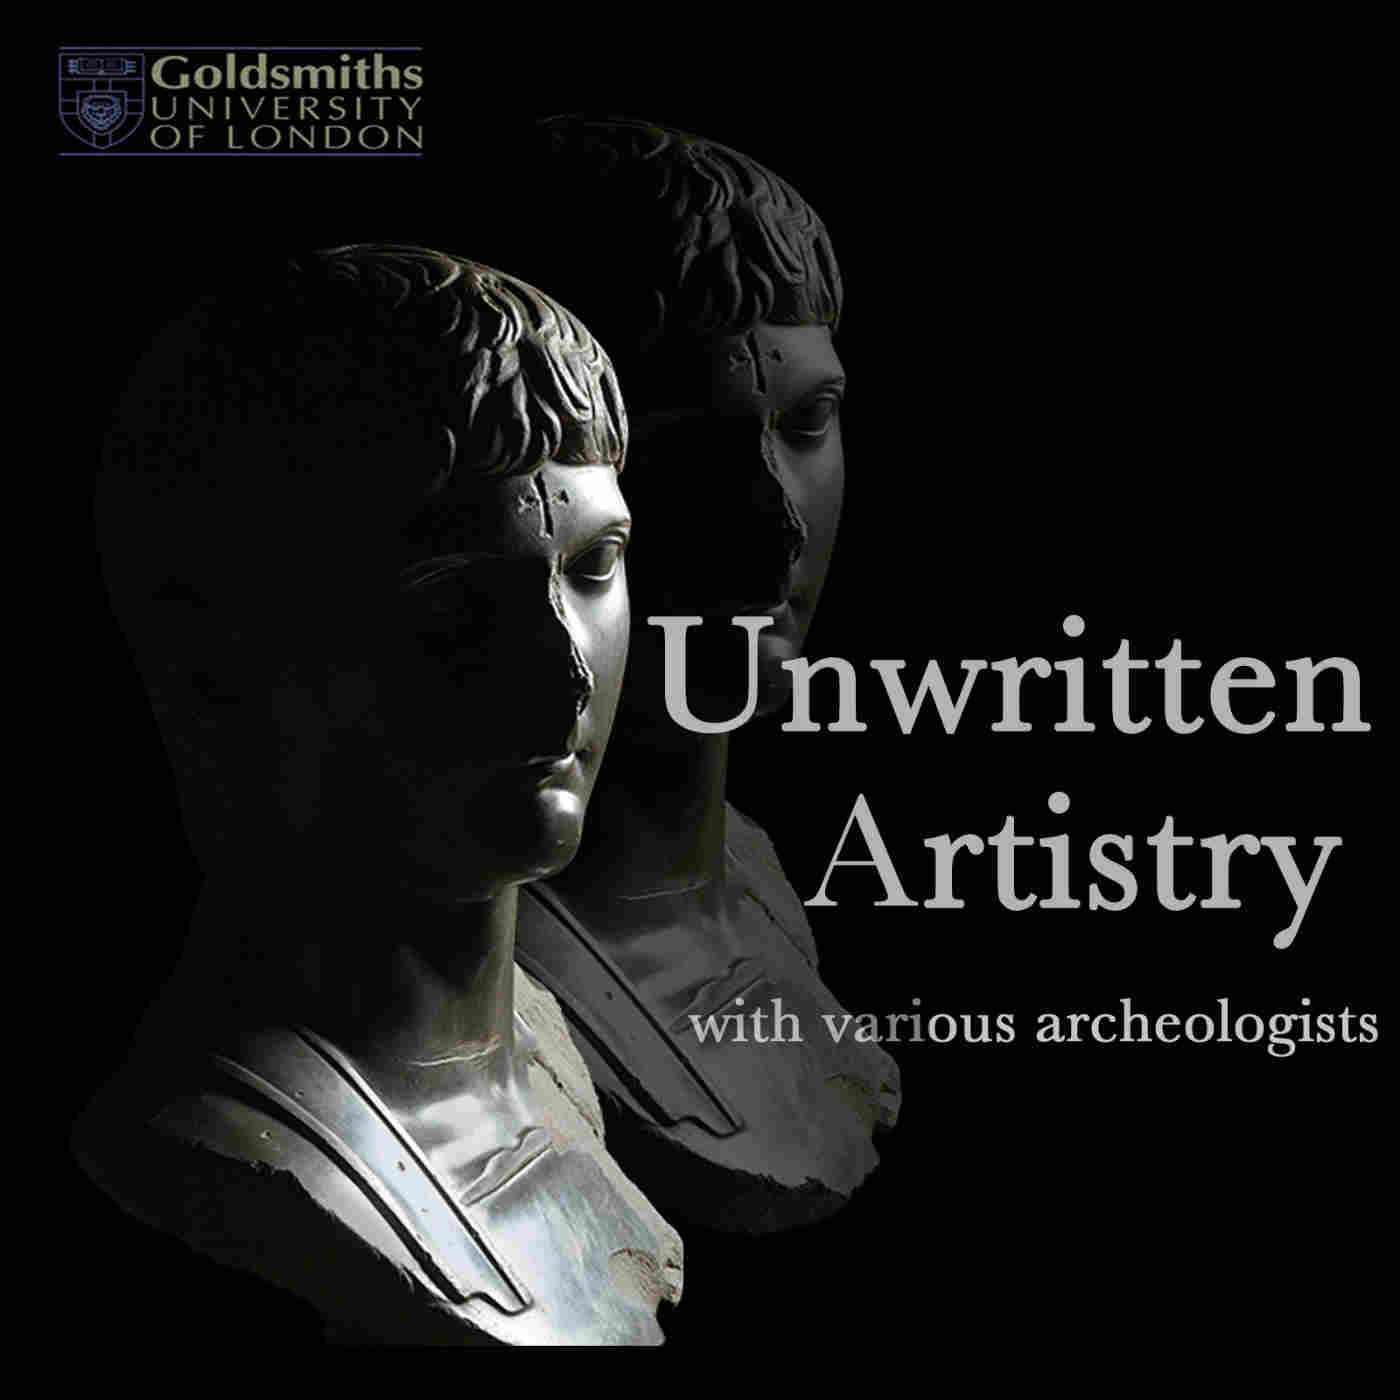 Unwritten Artistry with various archeologists